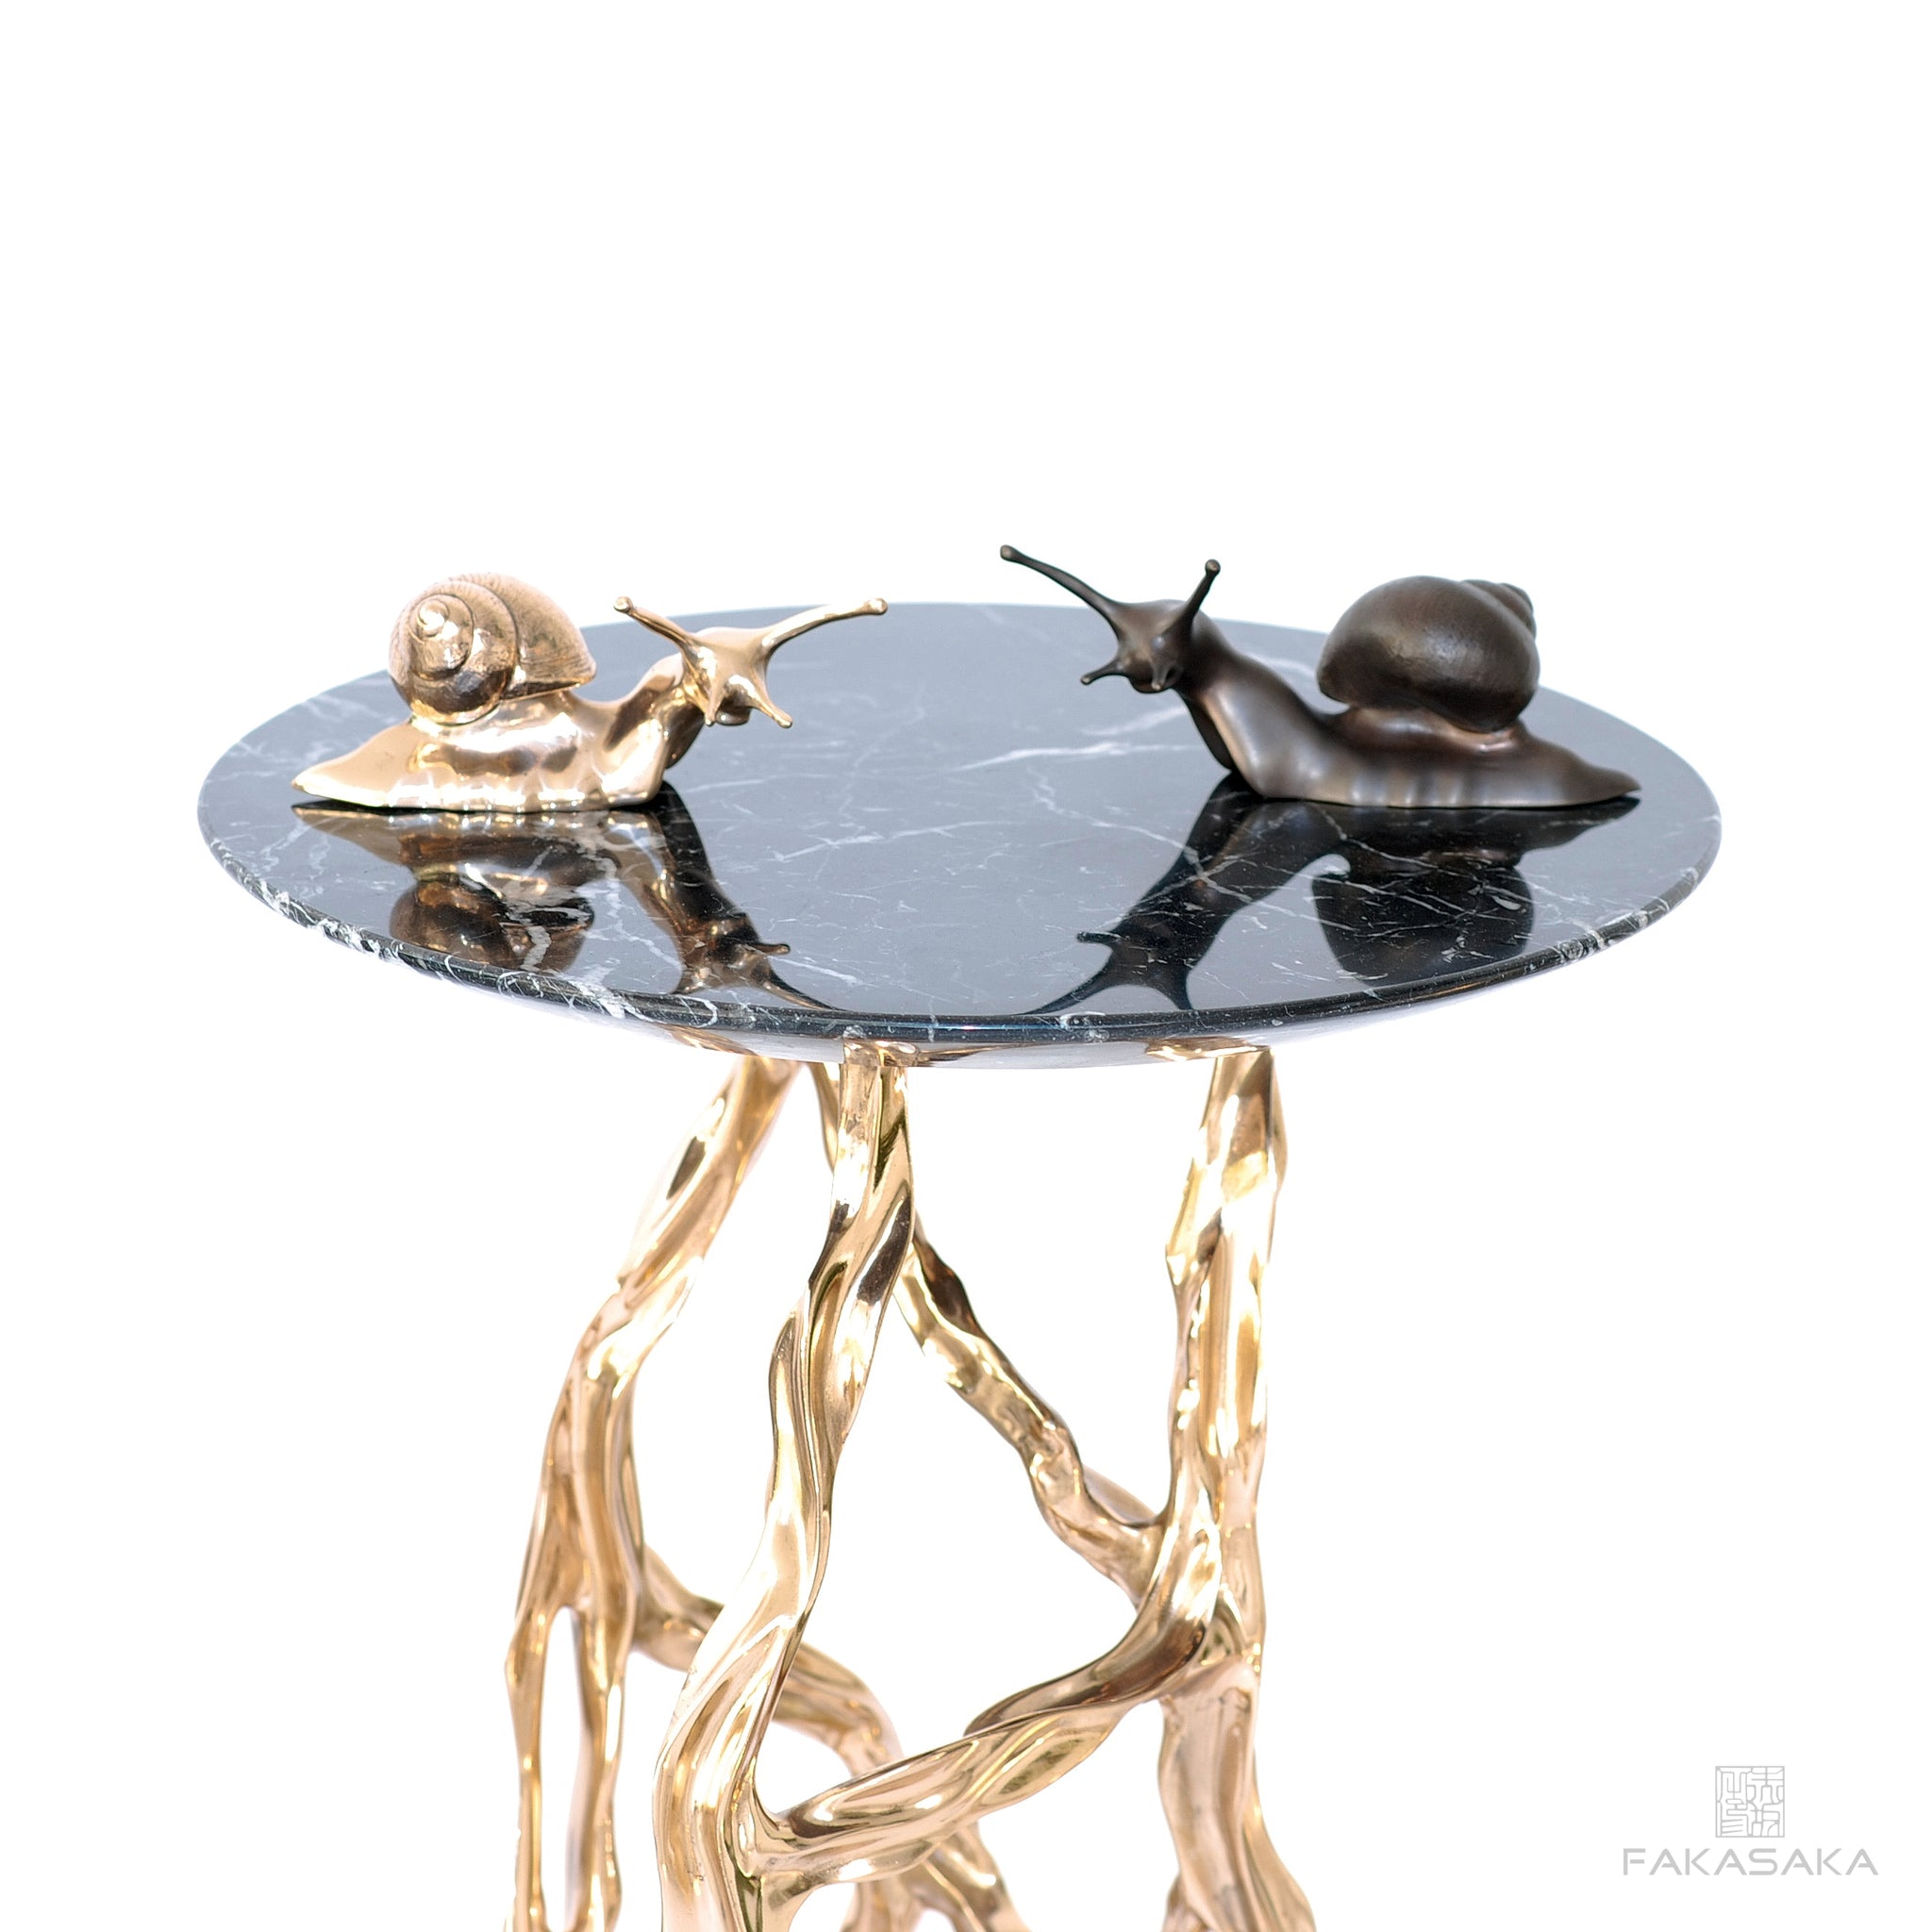 L' ESCARGOT GAUCHE<br><br>SCULPTURE / PAPER WEIGHT<br><br>DARK BRONZE<br>ONYX BASE